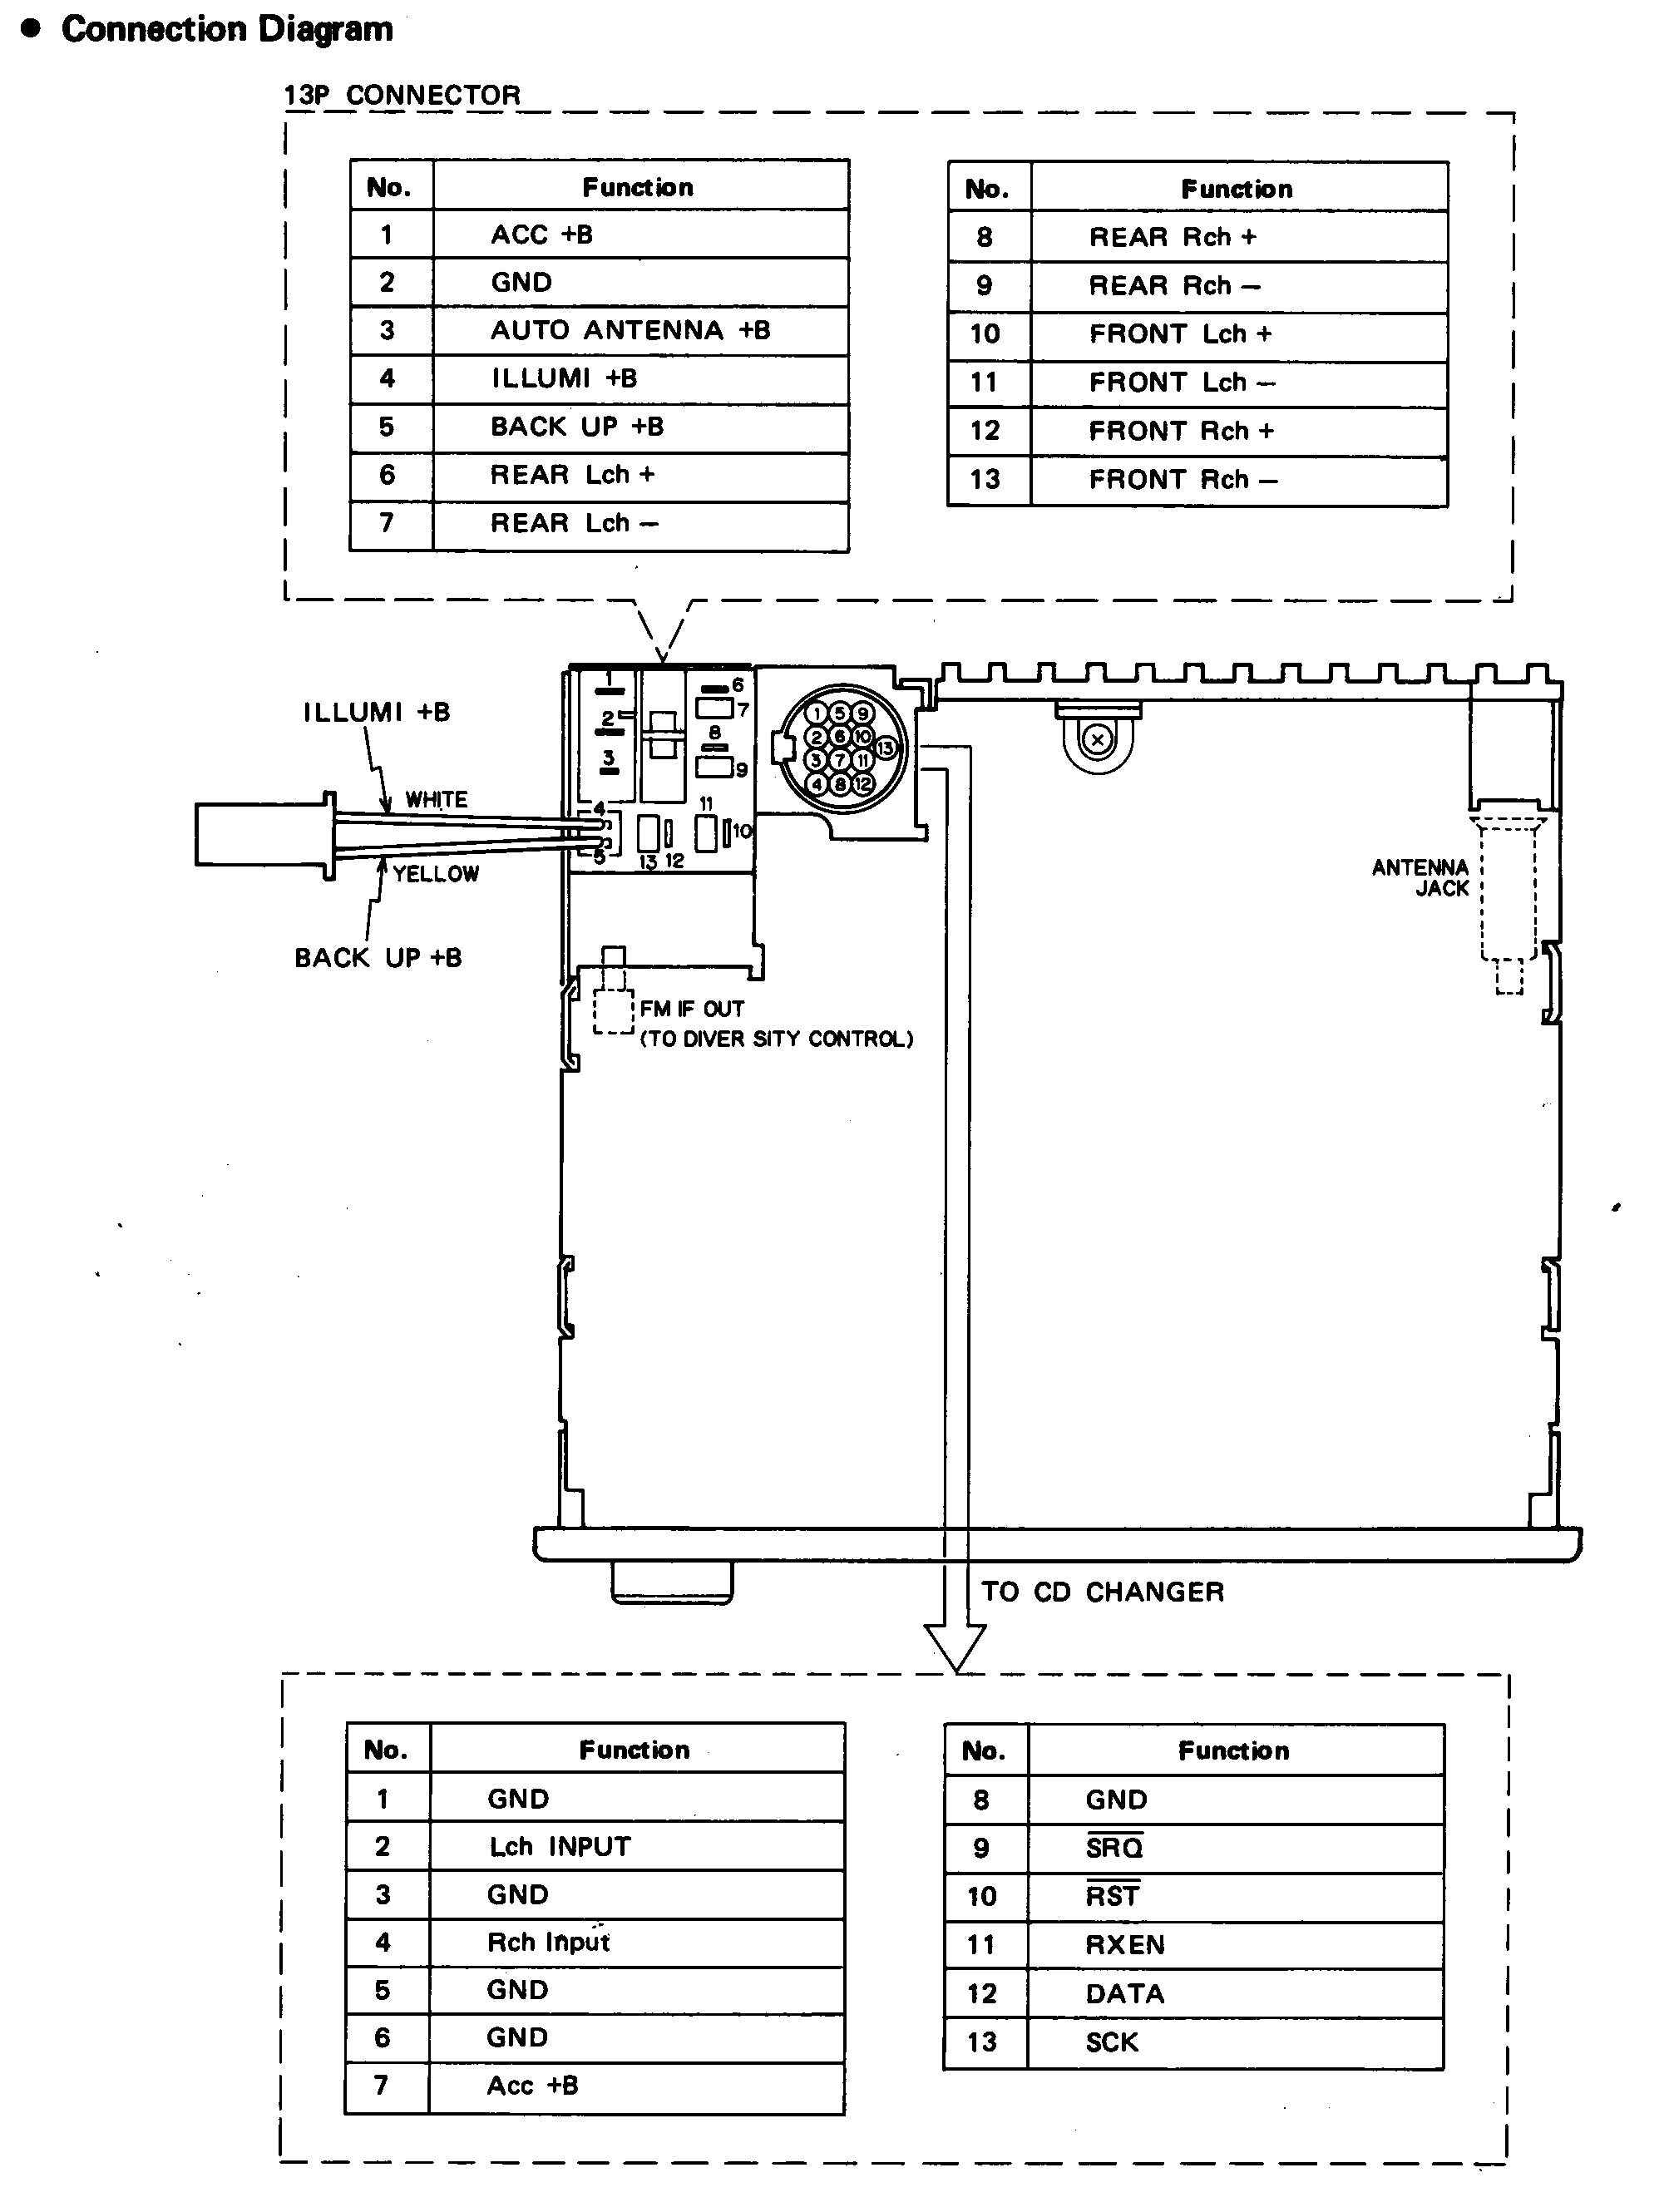 [SCHEMATICS_4ER]  E437 Alpine Stereo Wiring Diagram Bmw 5907 | Wiring Library | Alpine Harness Diagram |  | Wiring Library